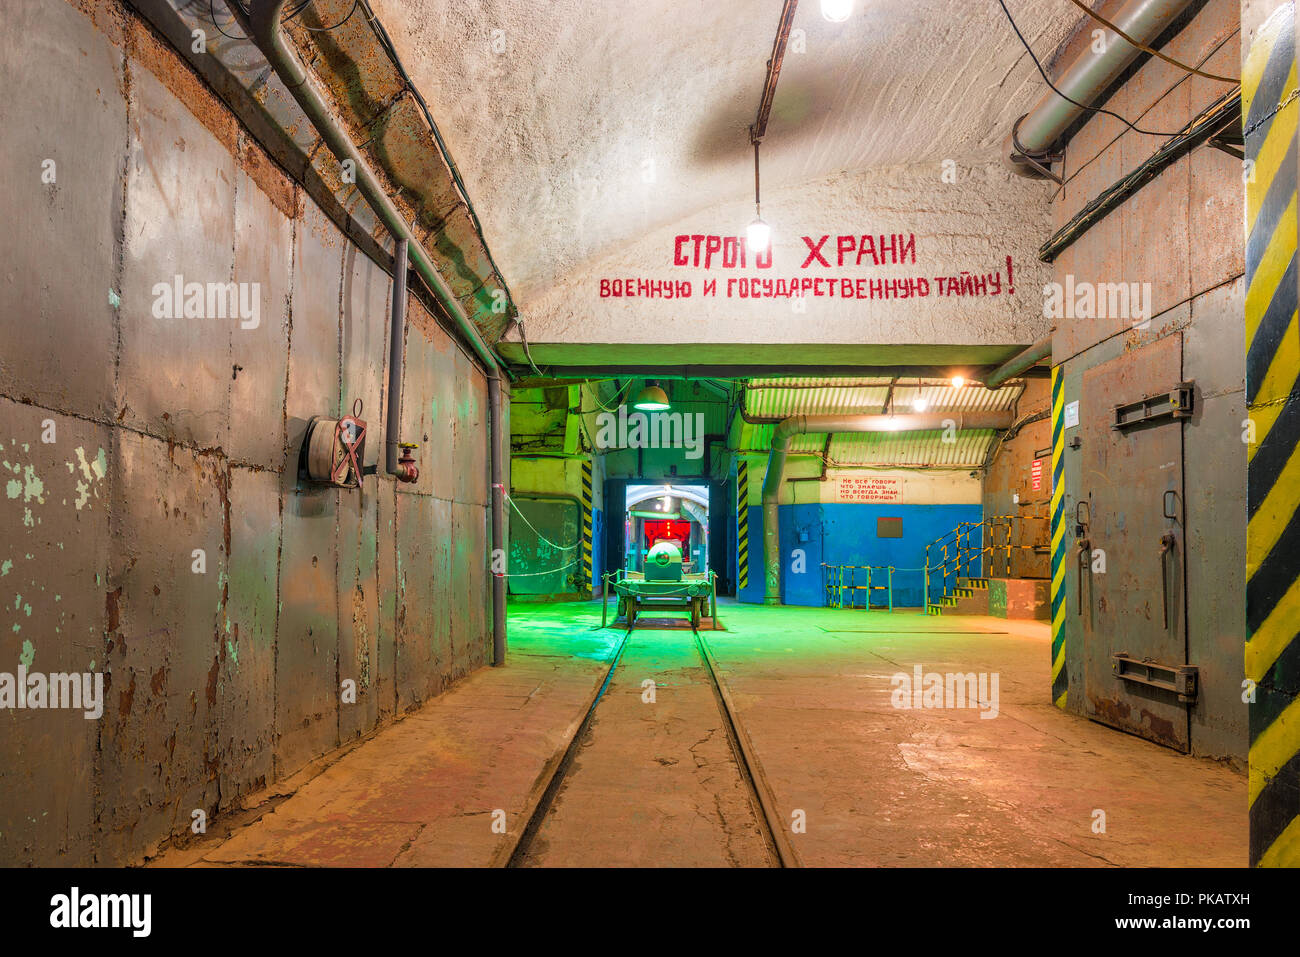 Underground object of fortification destruction, military-historical object, Balaklava, Russia - Stock Image